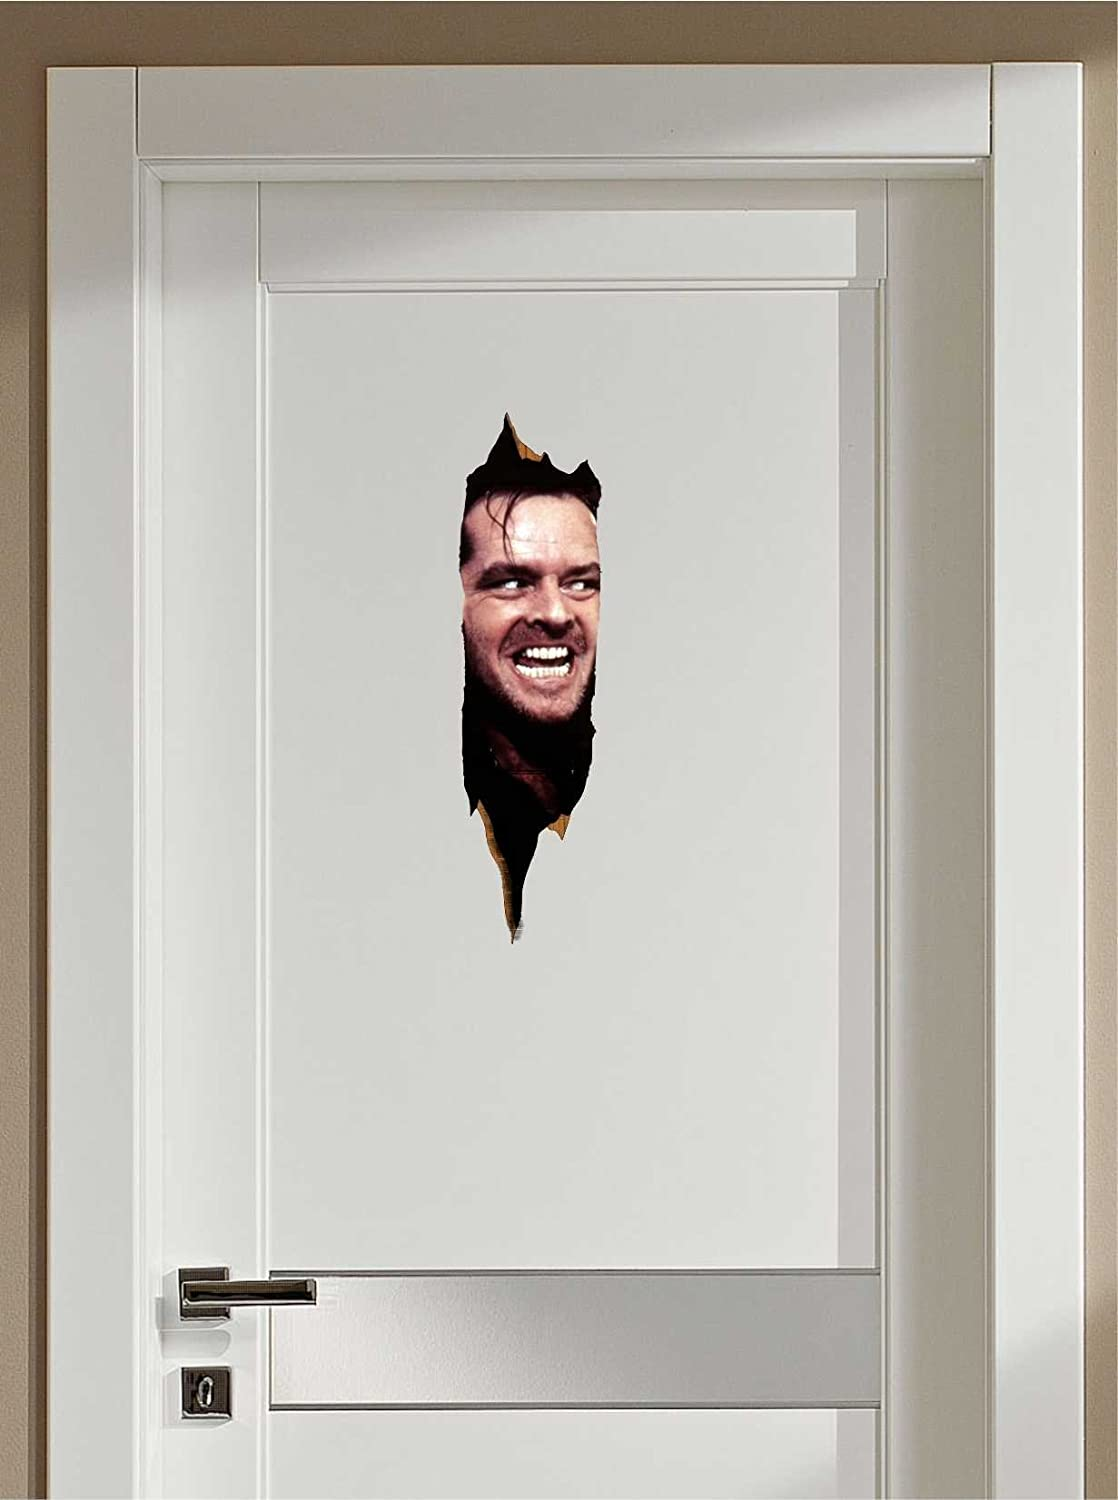 The Shining Here's Johnny Repositionable Door or Wall Decal Sticker Graphic-USA Seller-Makes a Great Gift!